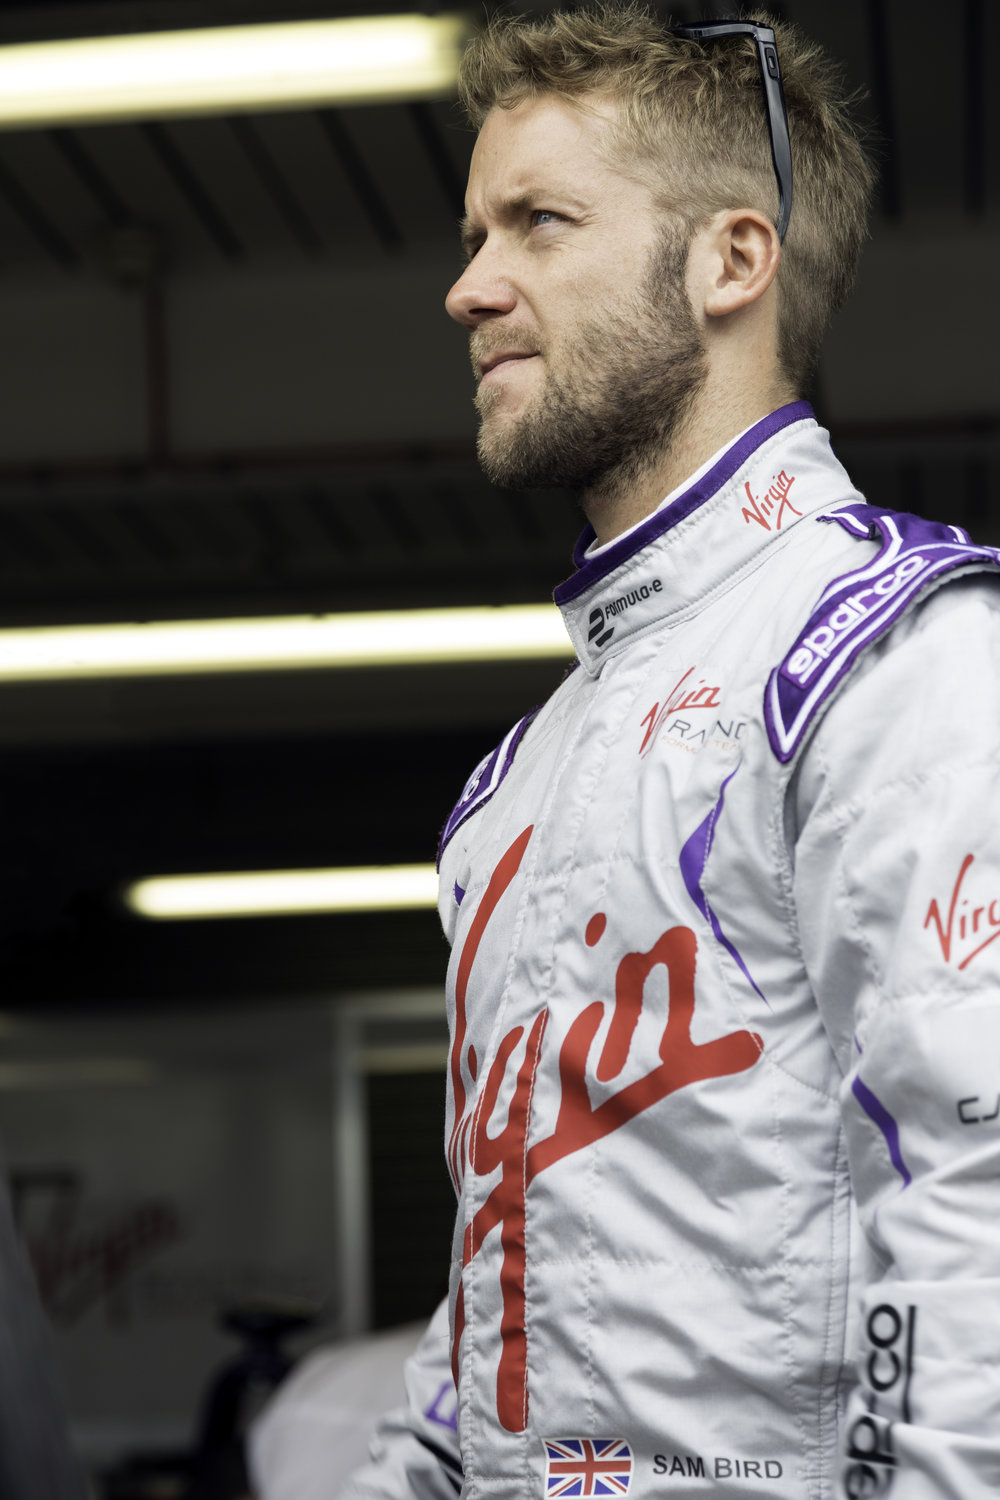 Sam Bird - Formula-e Racing Driver